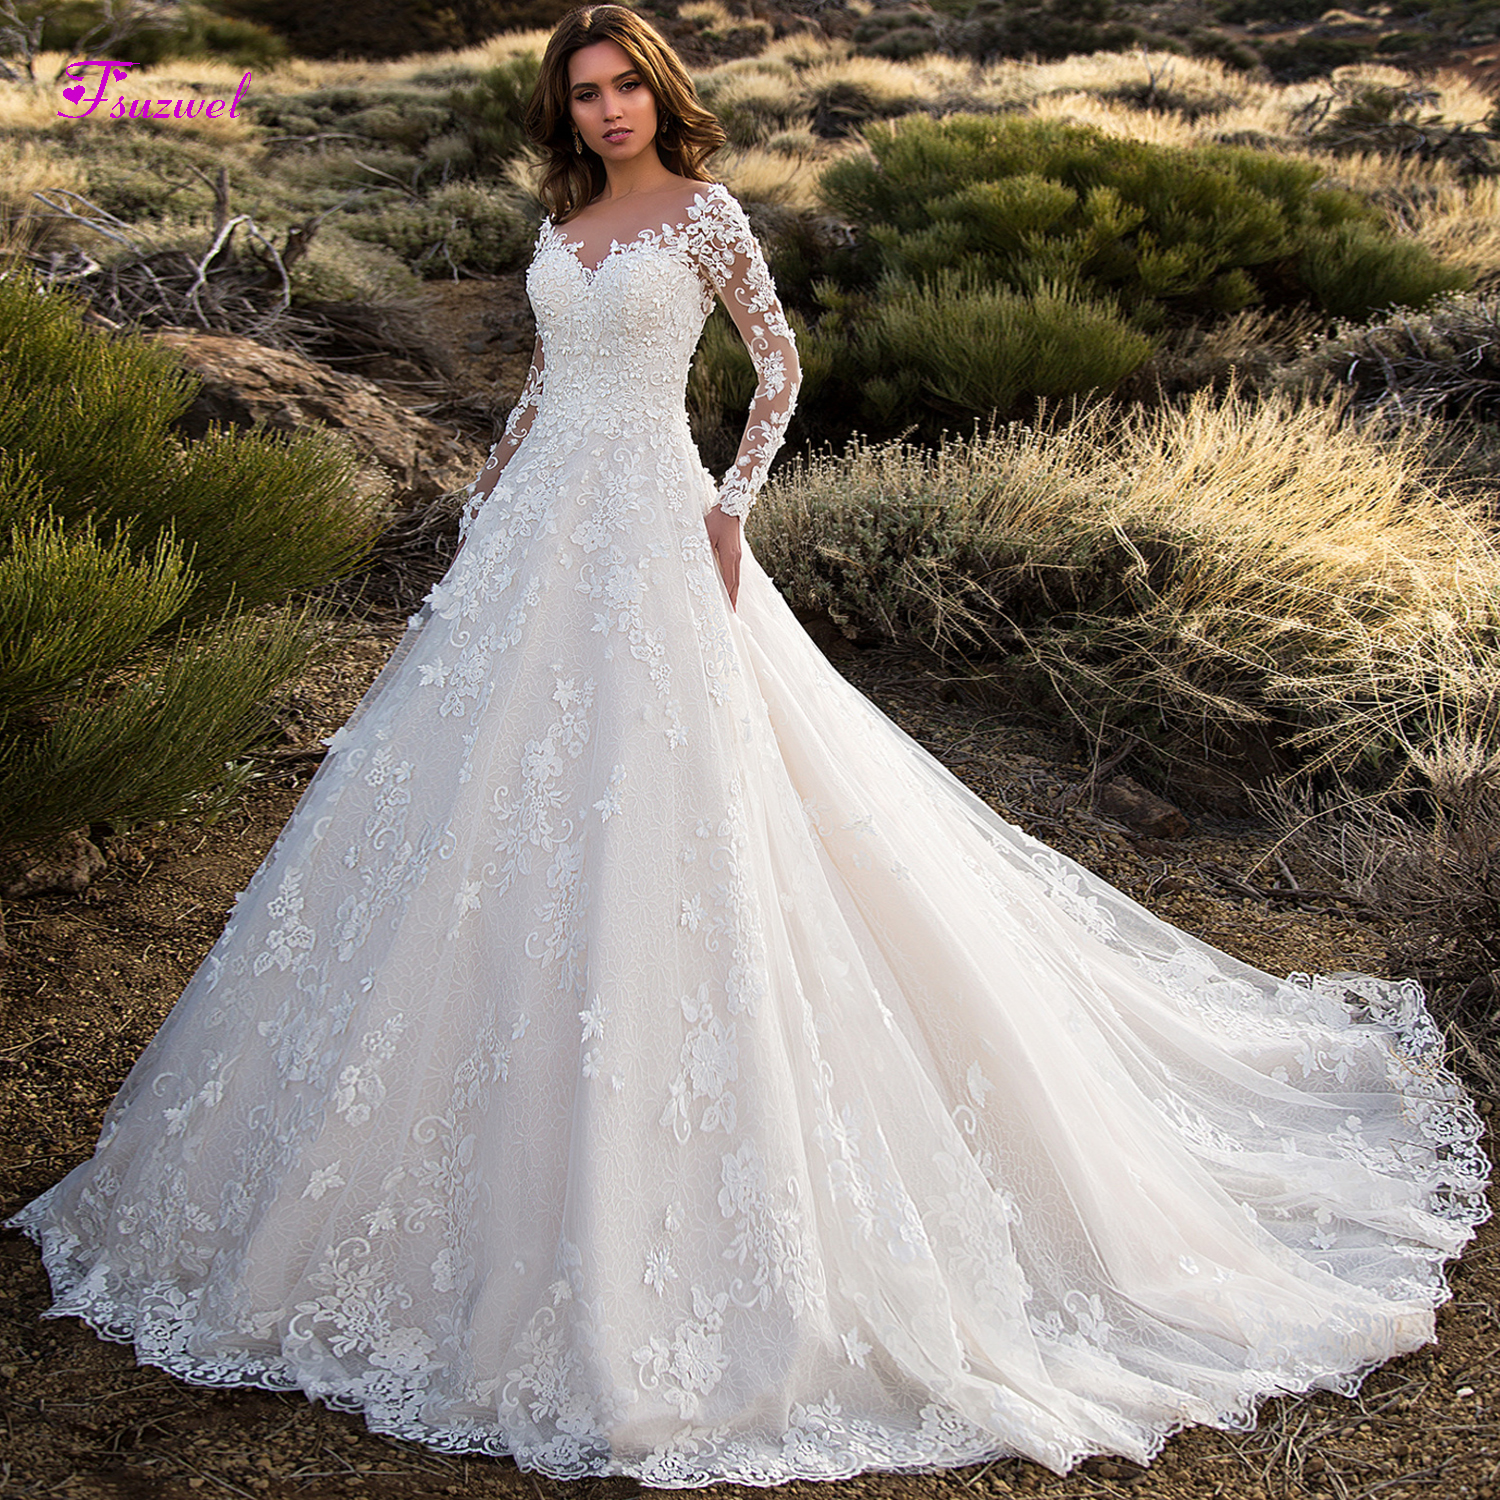 Glamorous Court Train Appliques Lace A-Line <font><b>Wedding</b></font> <font><b>Dress</b></font> 2020 <font><b>Sexy</b></font> Scoop Neck Flowers Long Sleeve Princess Bride Gown Plus Size image